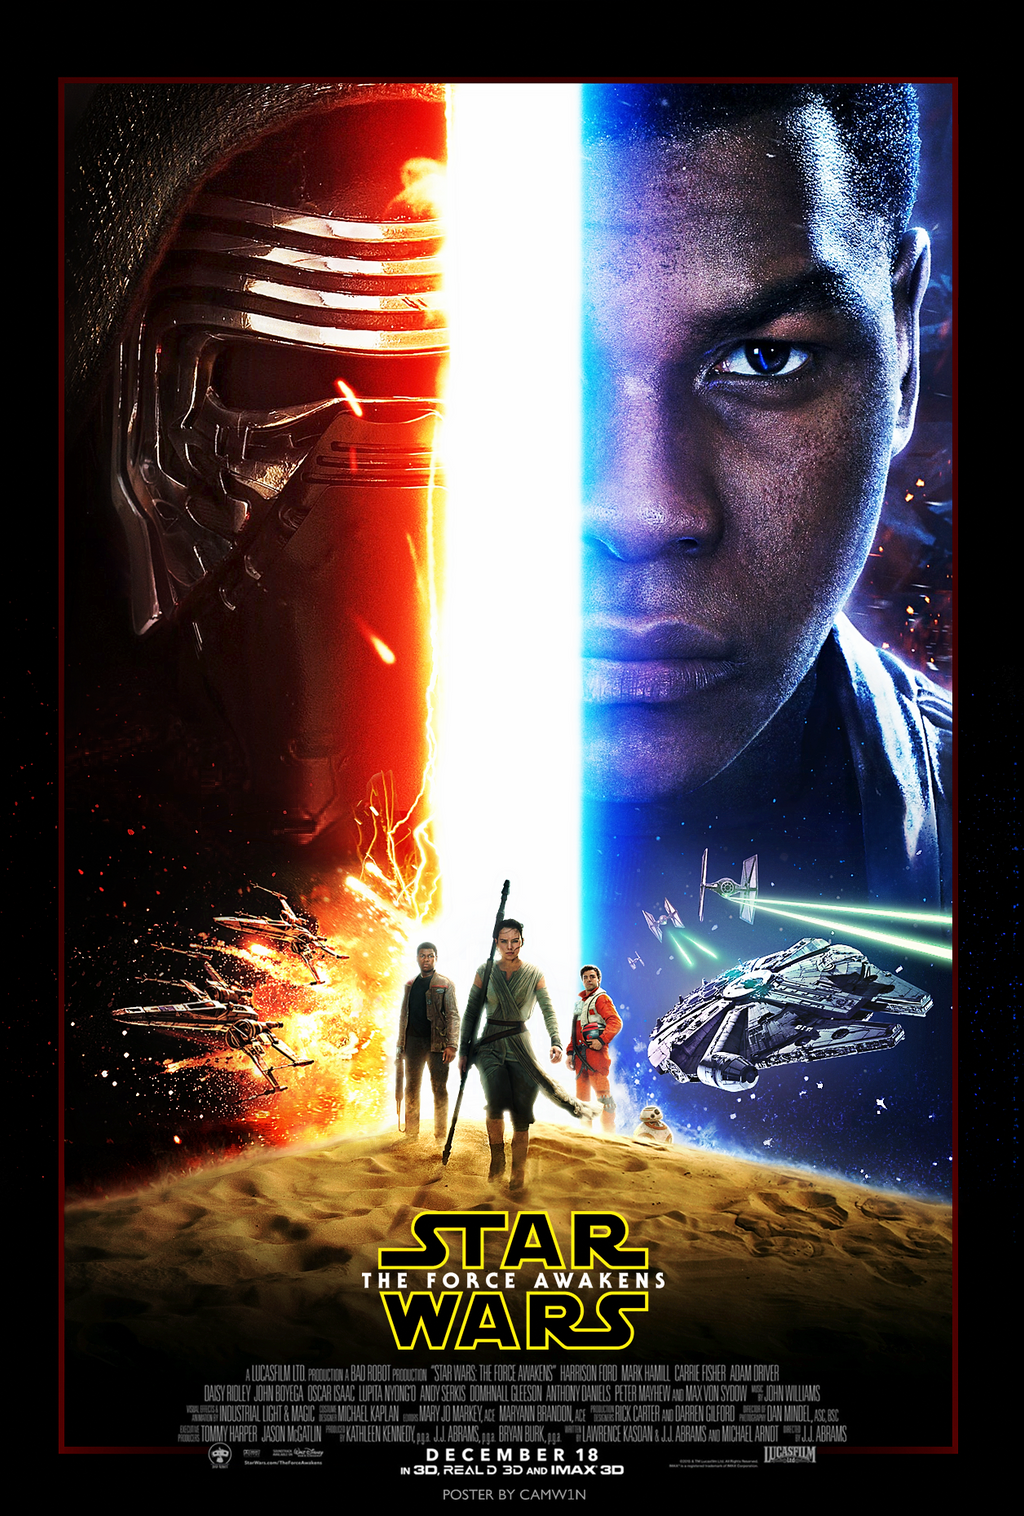 star wars: the force awakens (2015) - poster by camw1n on deviantart